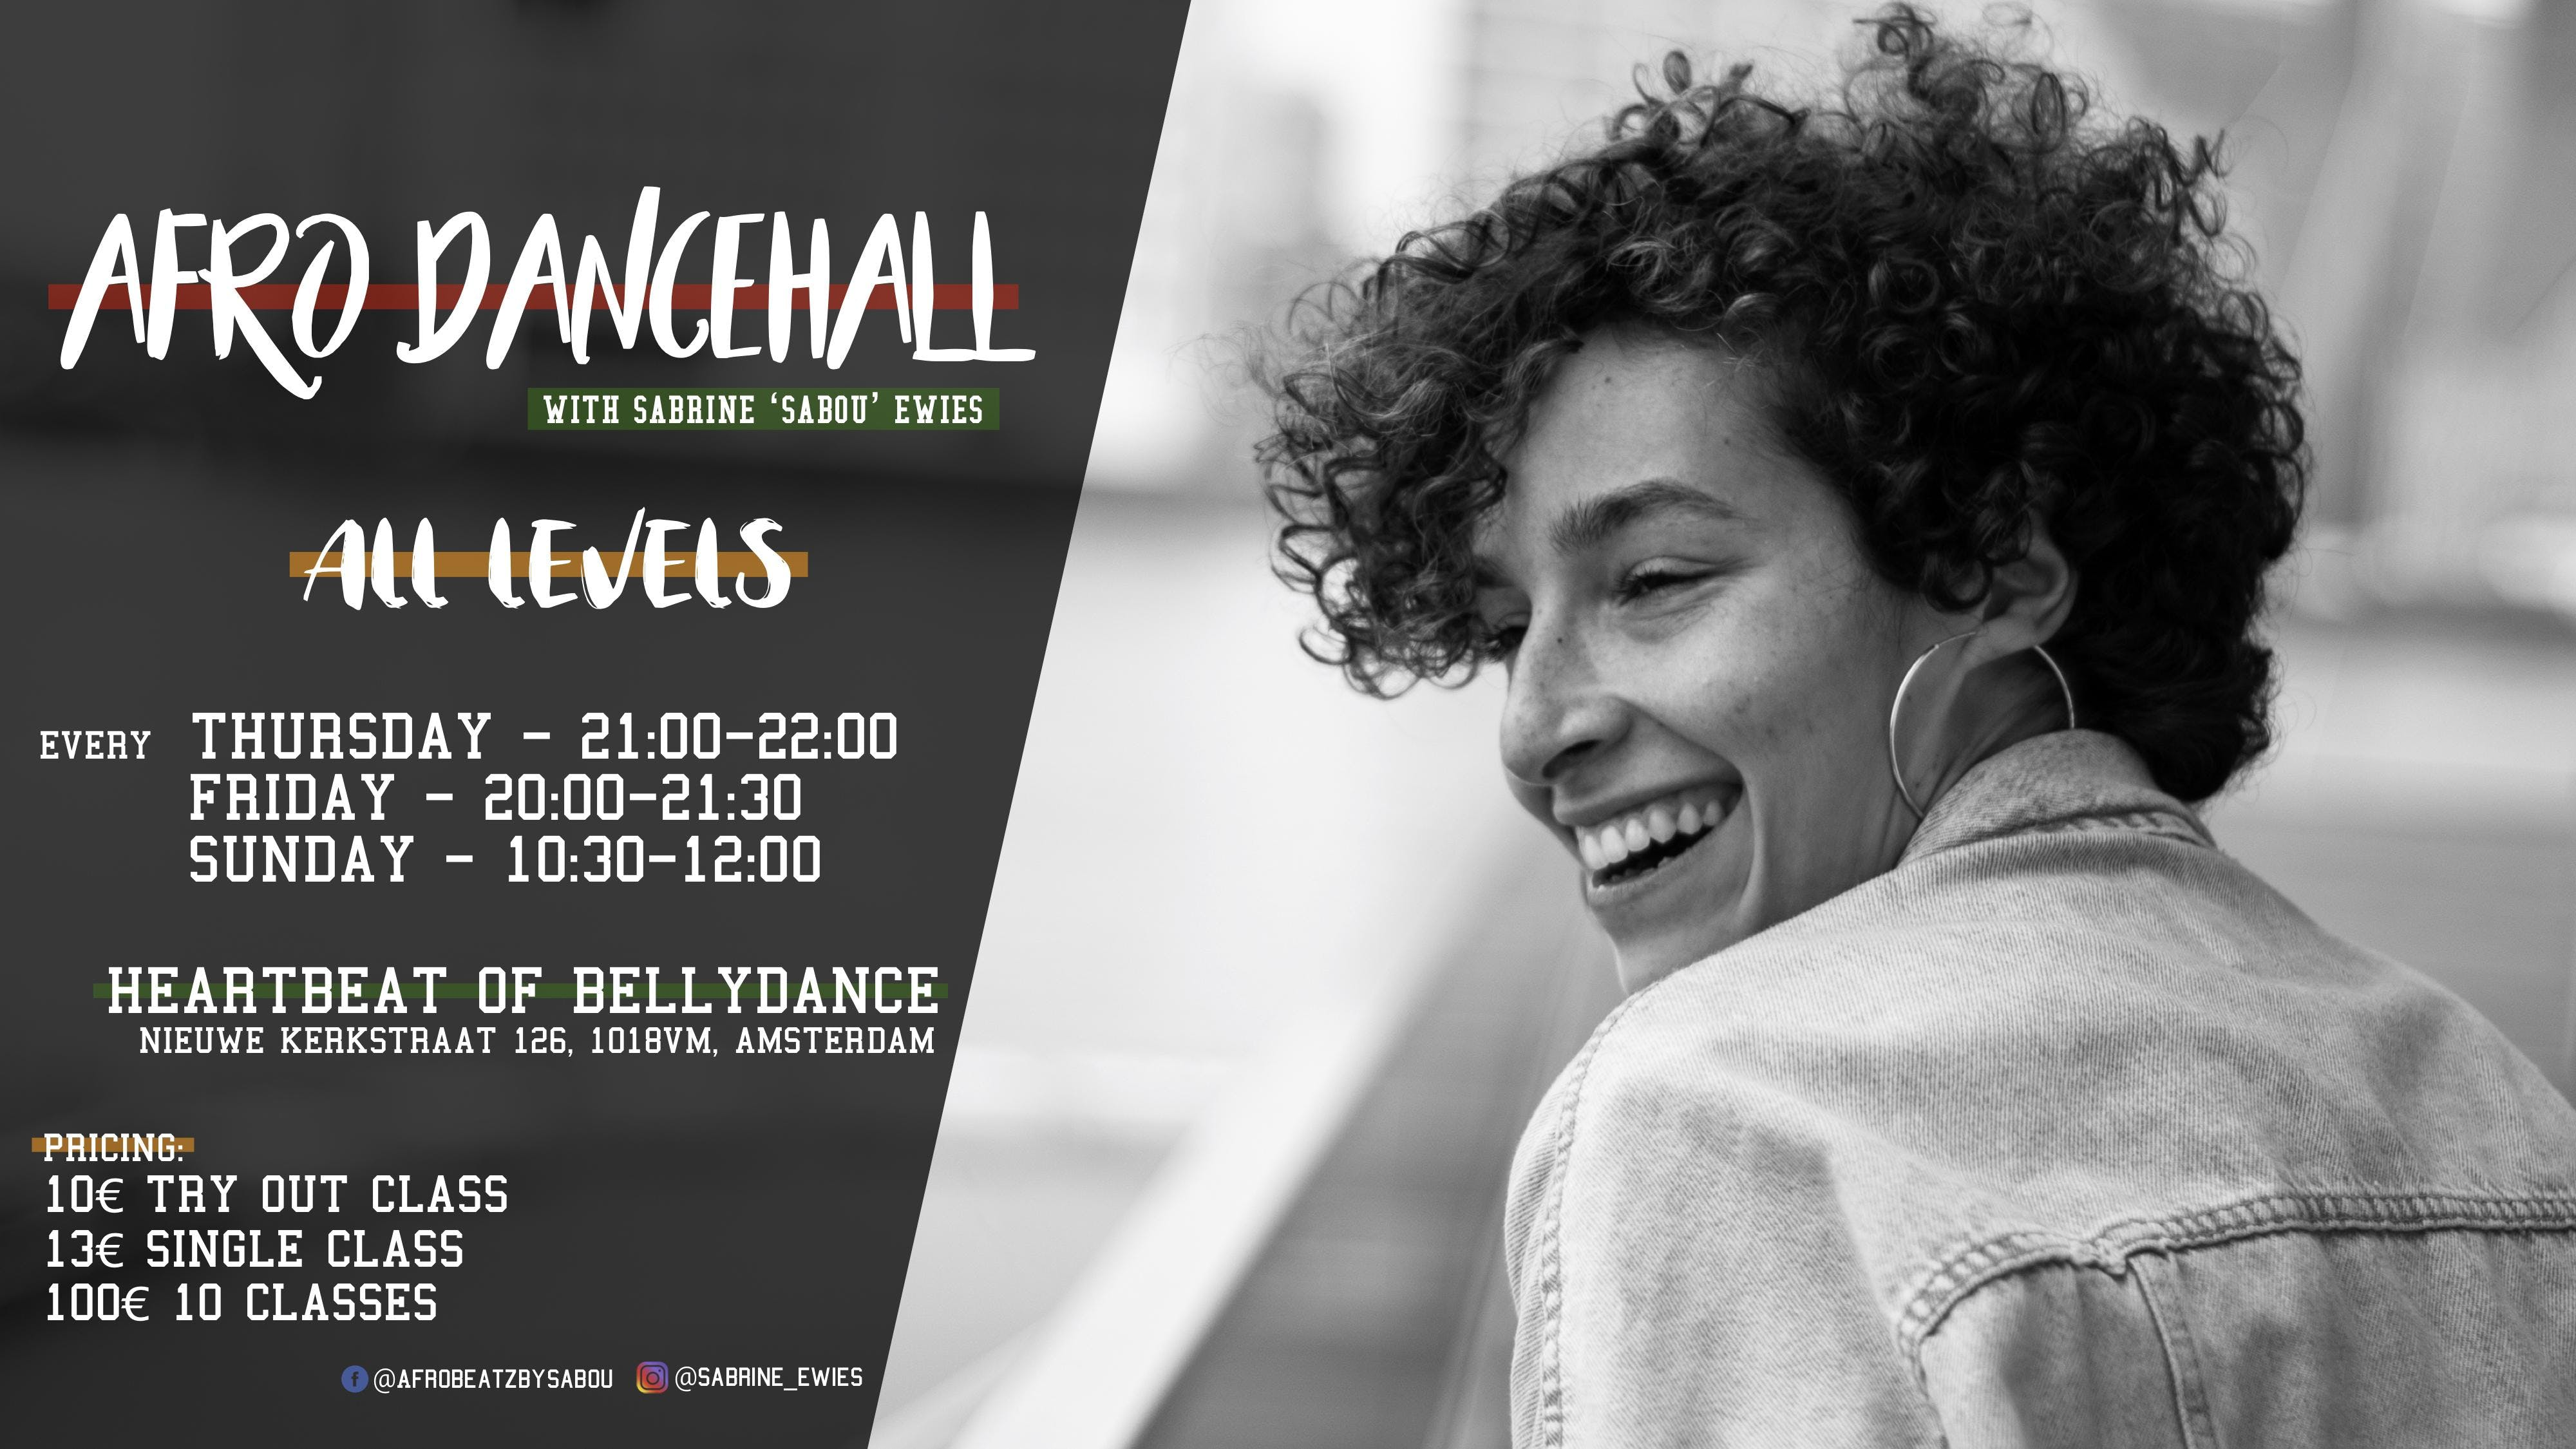 AFRO DANCEHALL in Amsterdam! (FRIDAY edition)